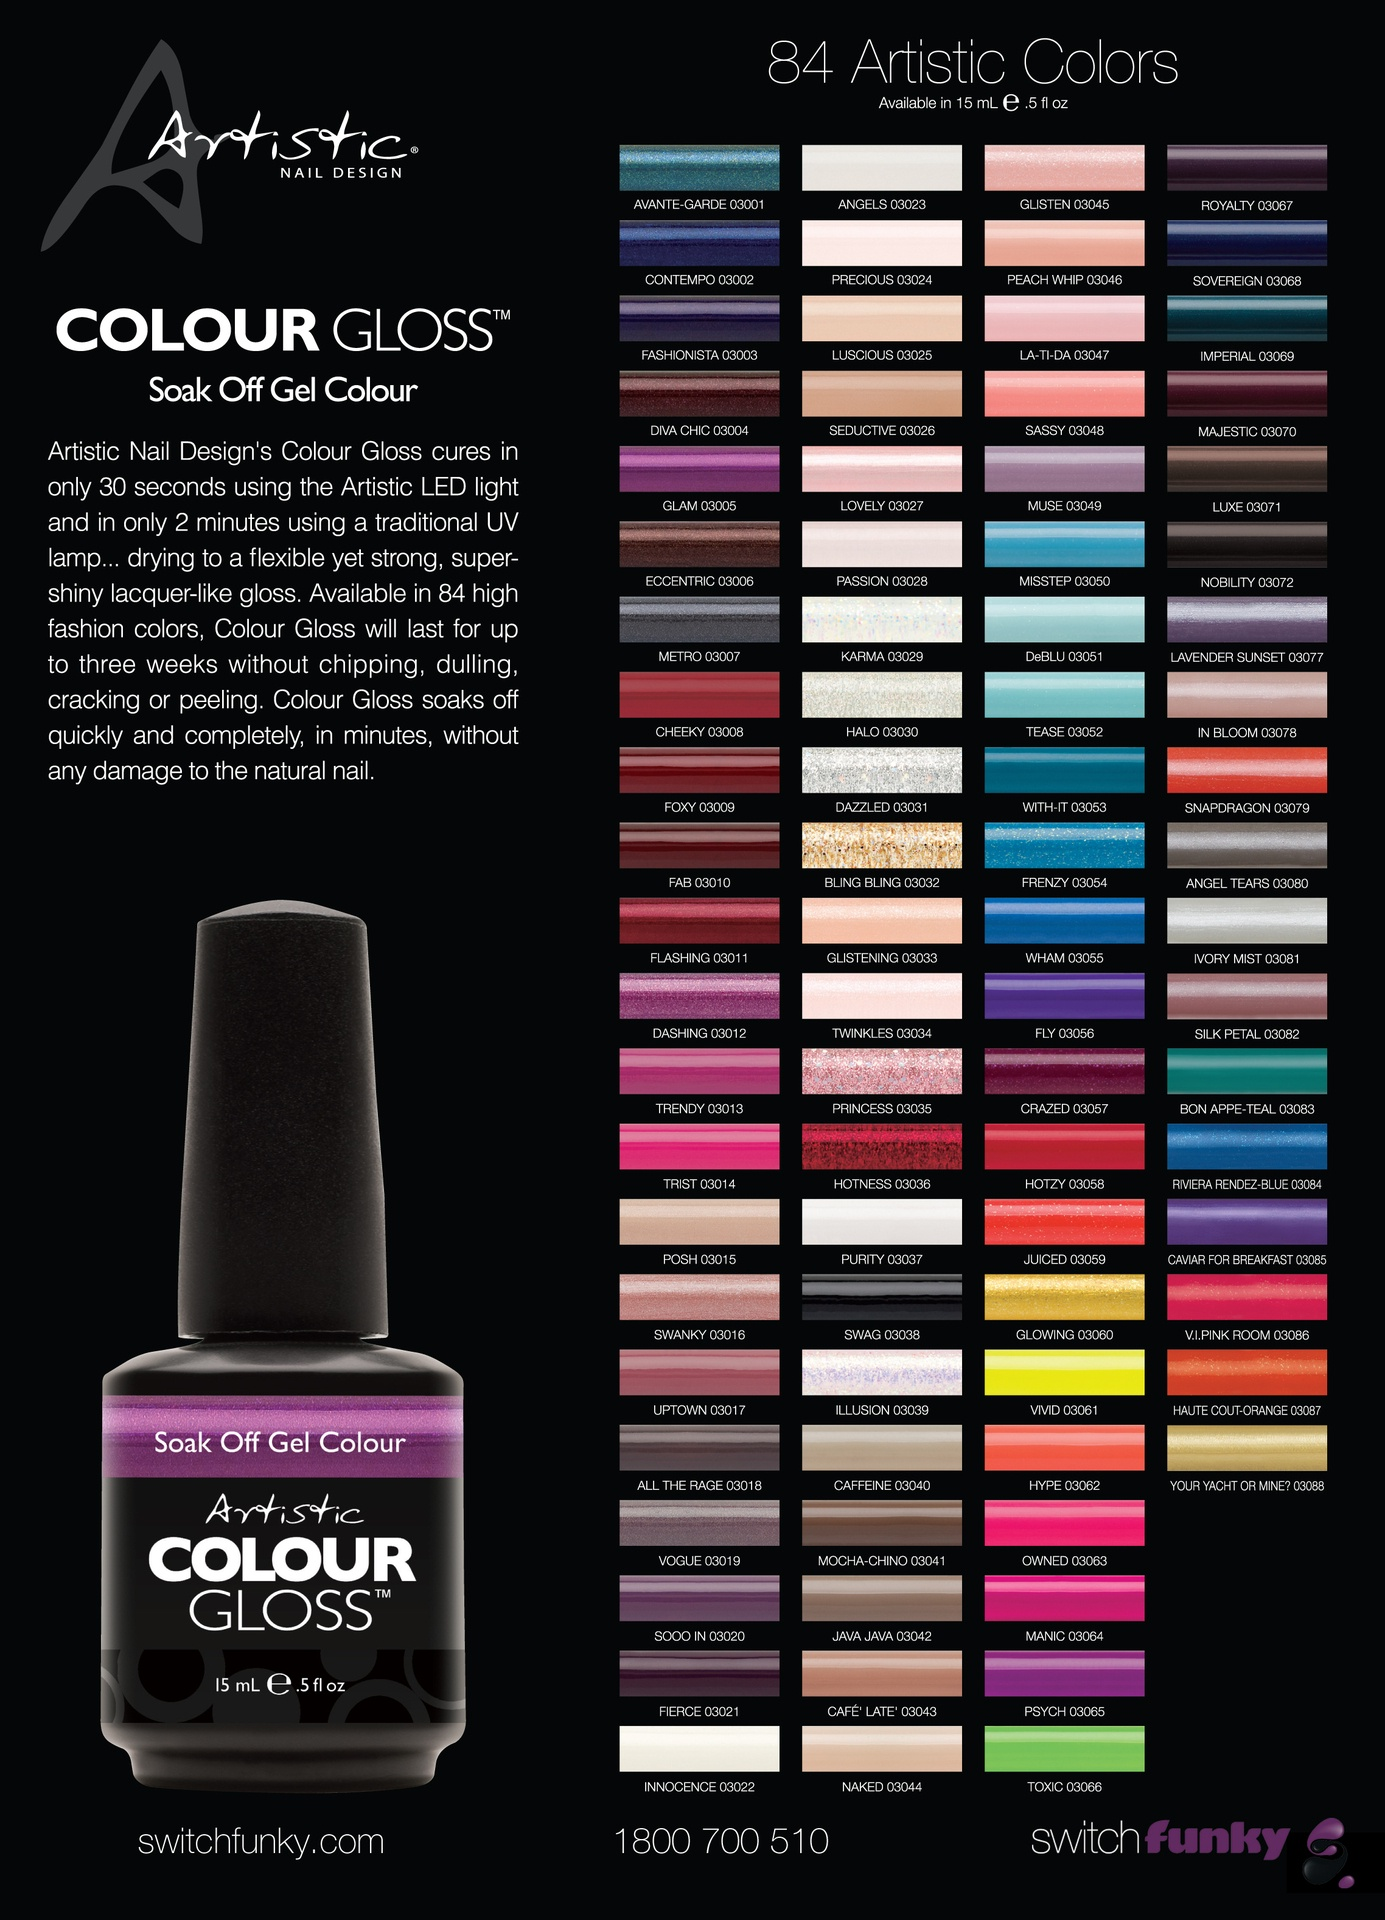 Profile salon supplies profile salon supplies artistic nail design prinsesfo Image collections